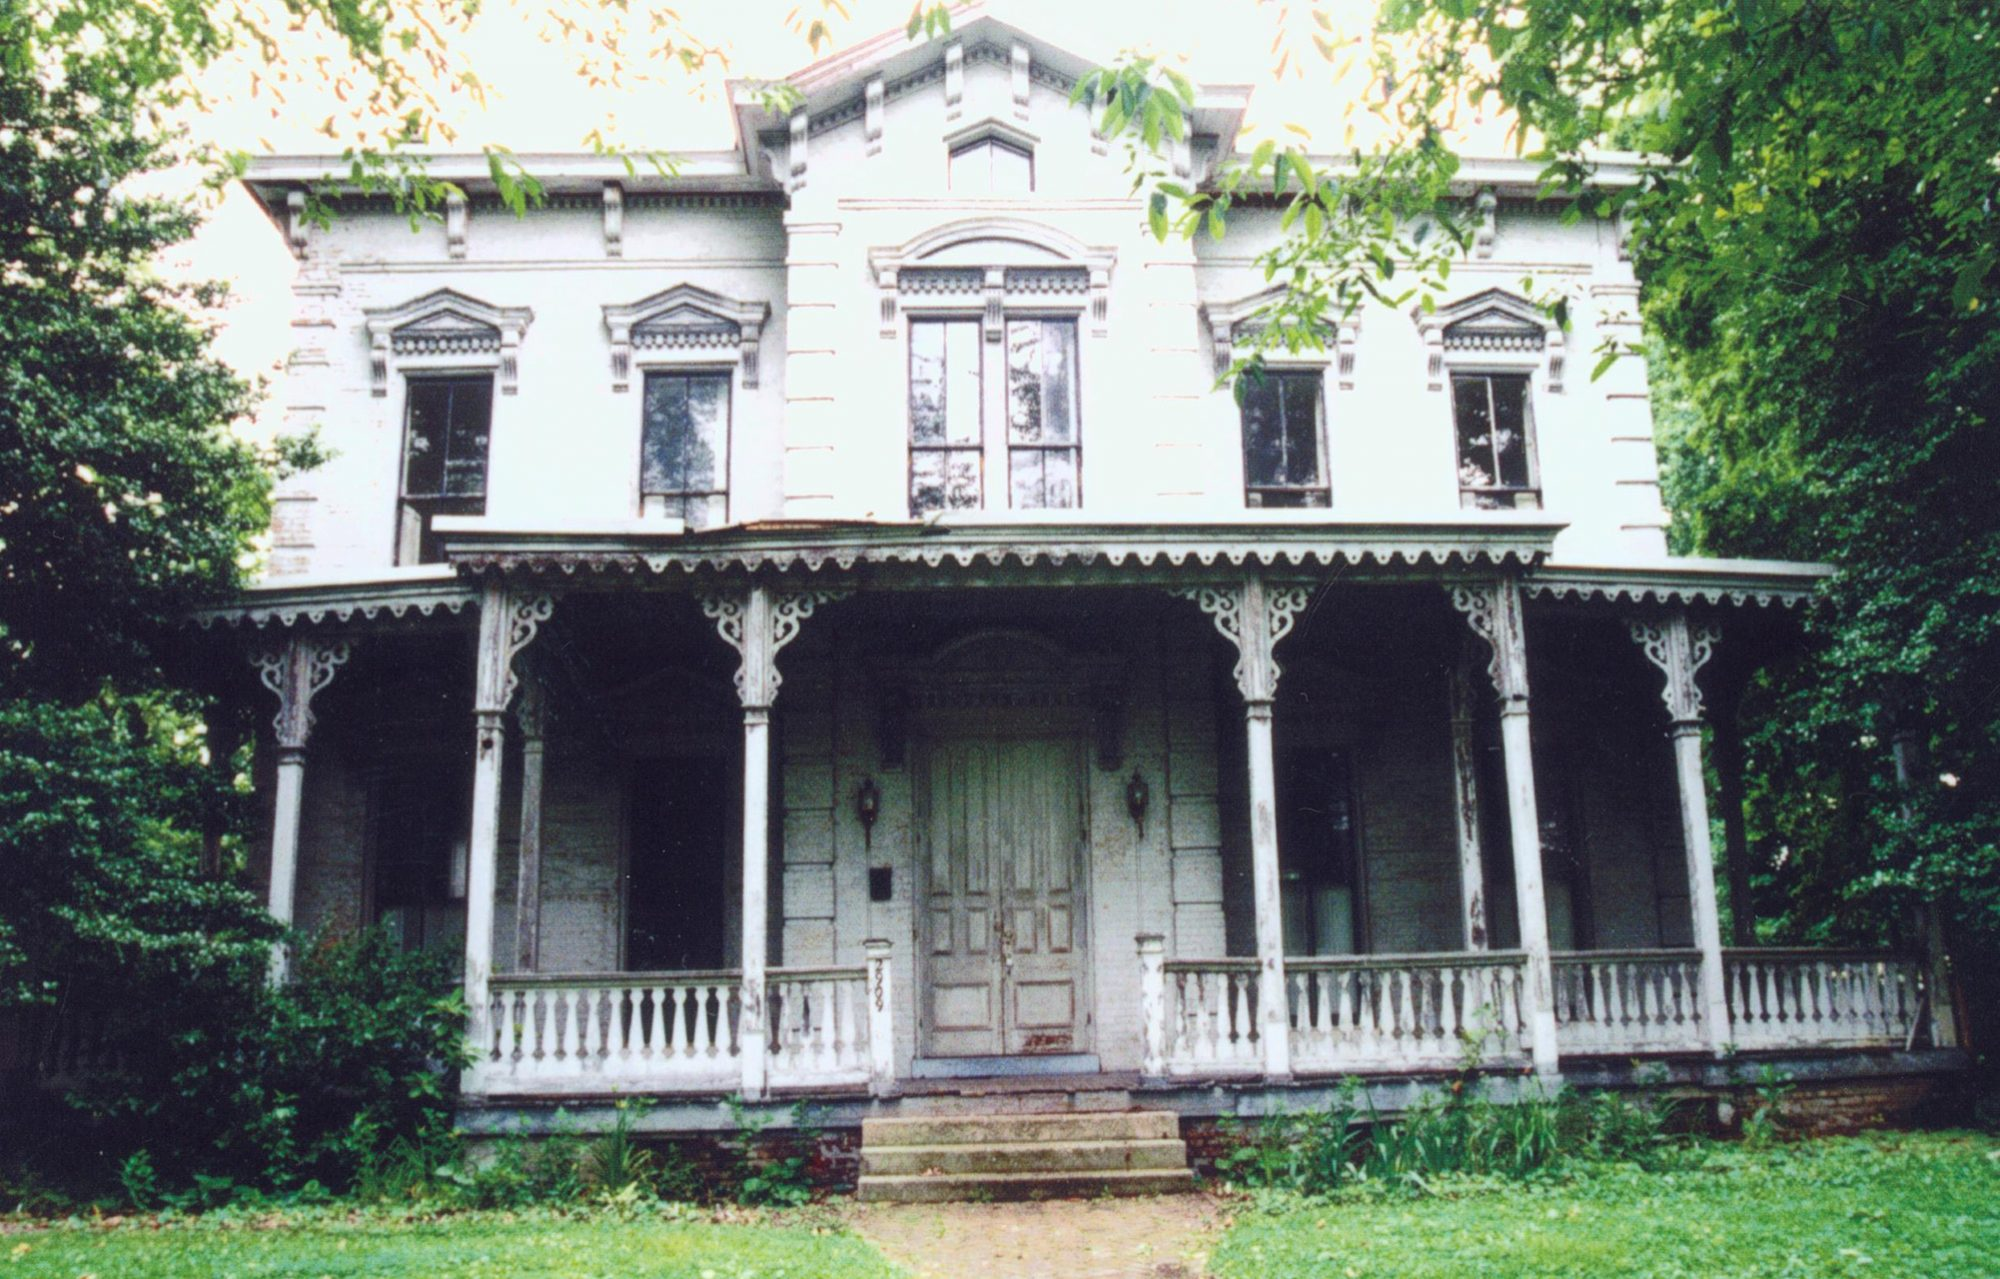 125-year old Italianate home with porch